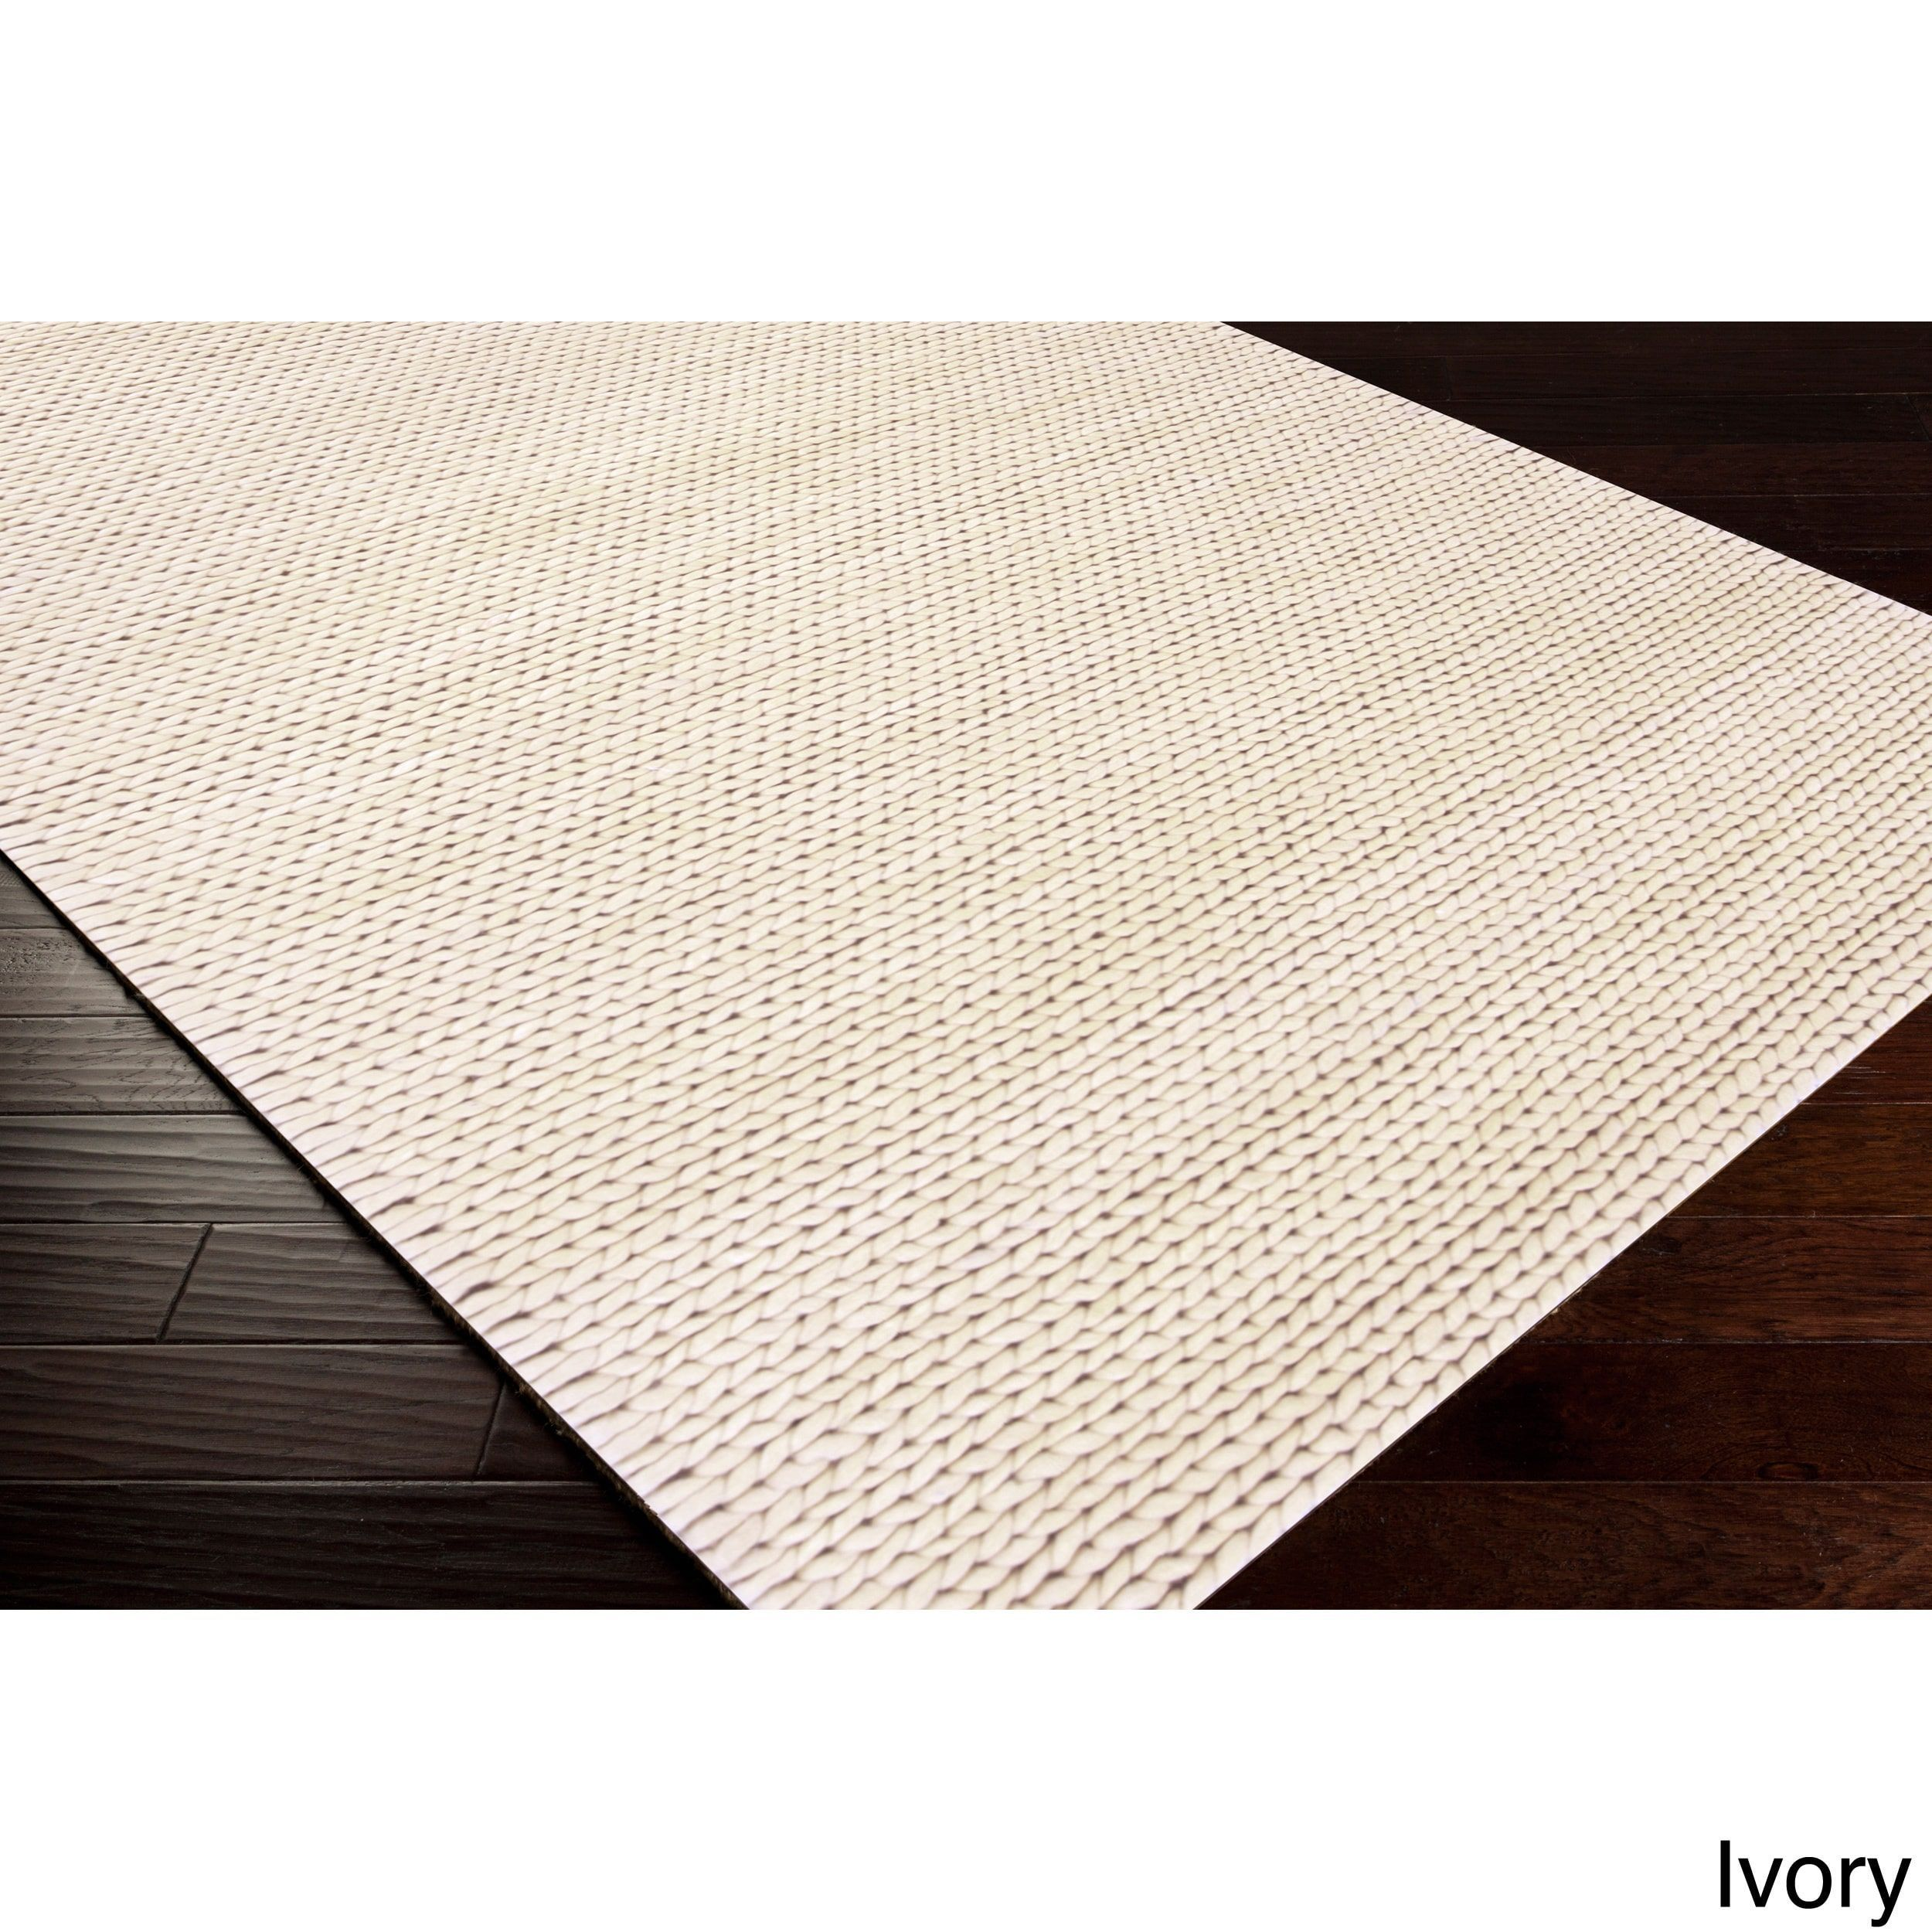 Hand Woven Hale Contemporary Solid Braided New Zealand Wool Area Rug 8 X 10